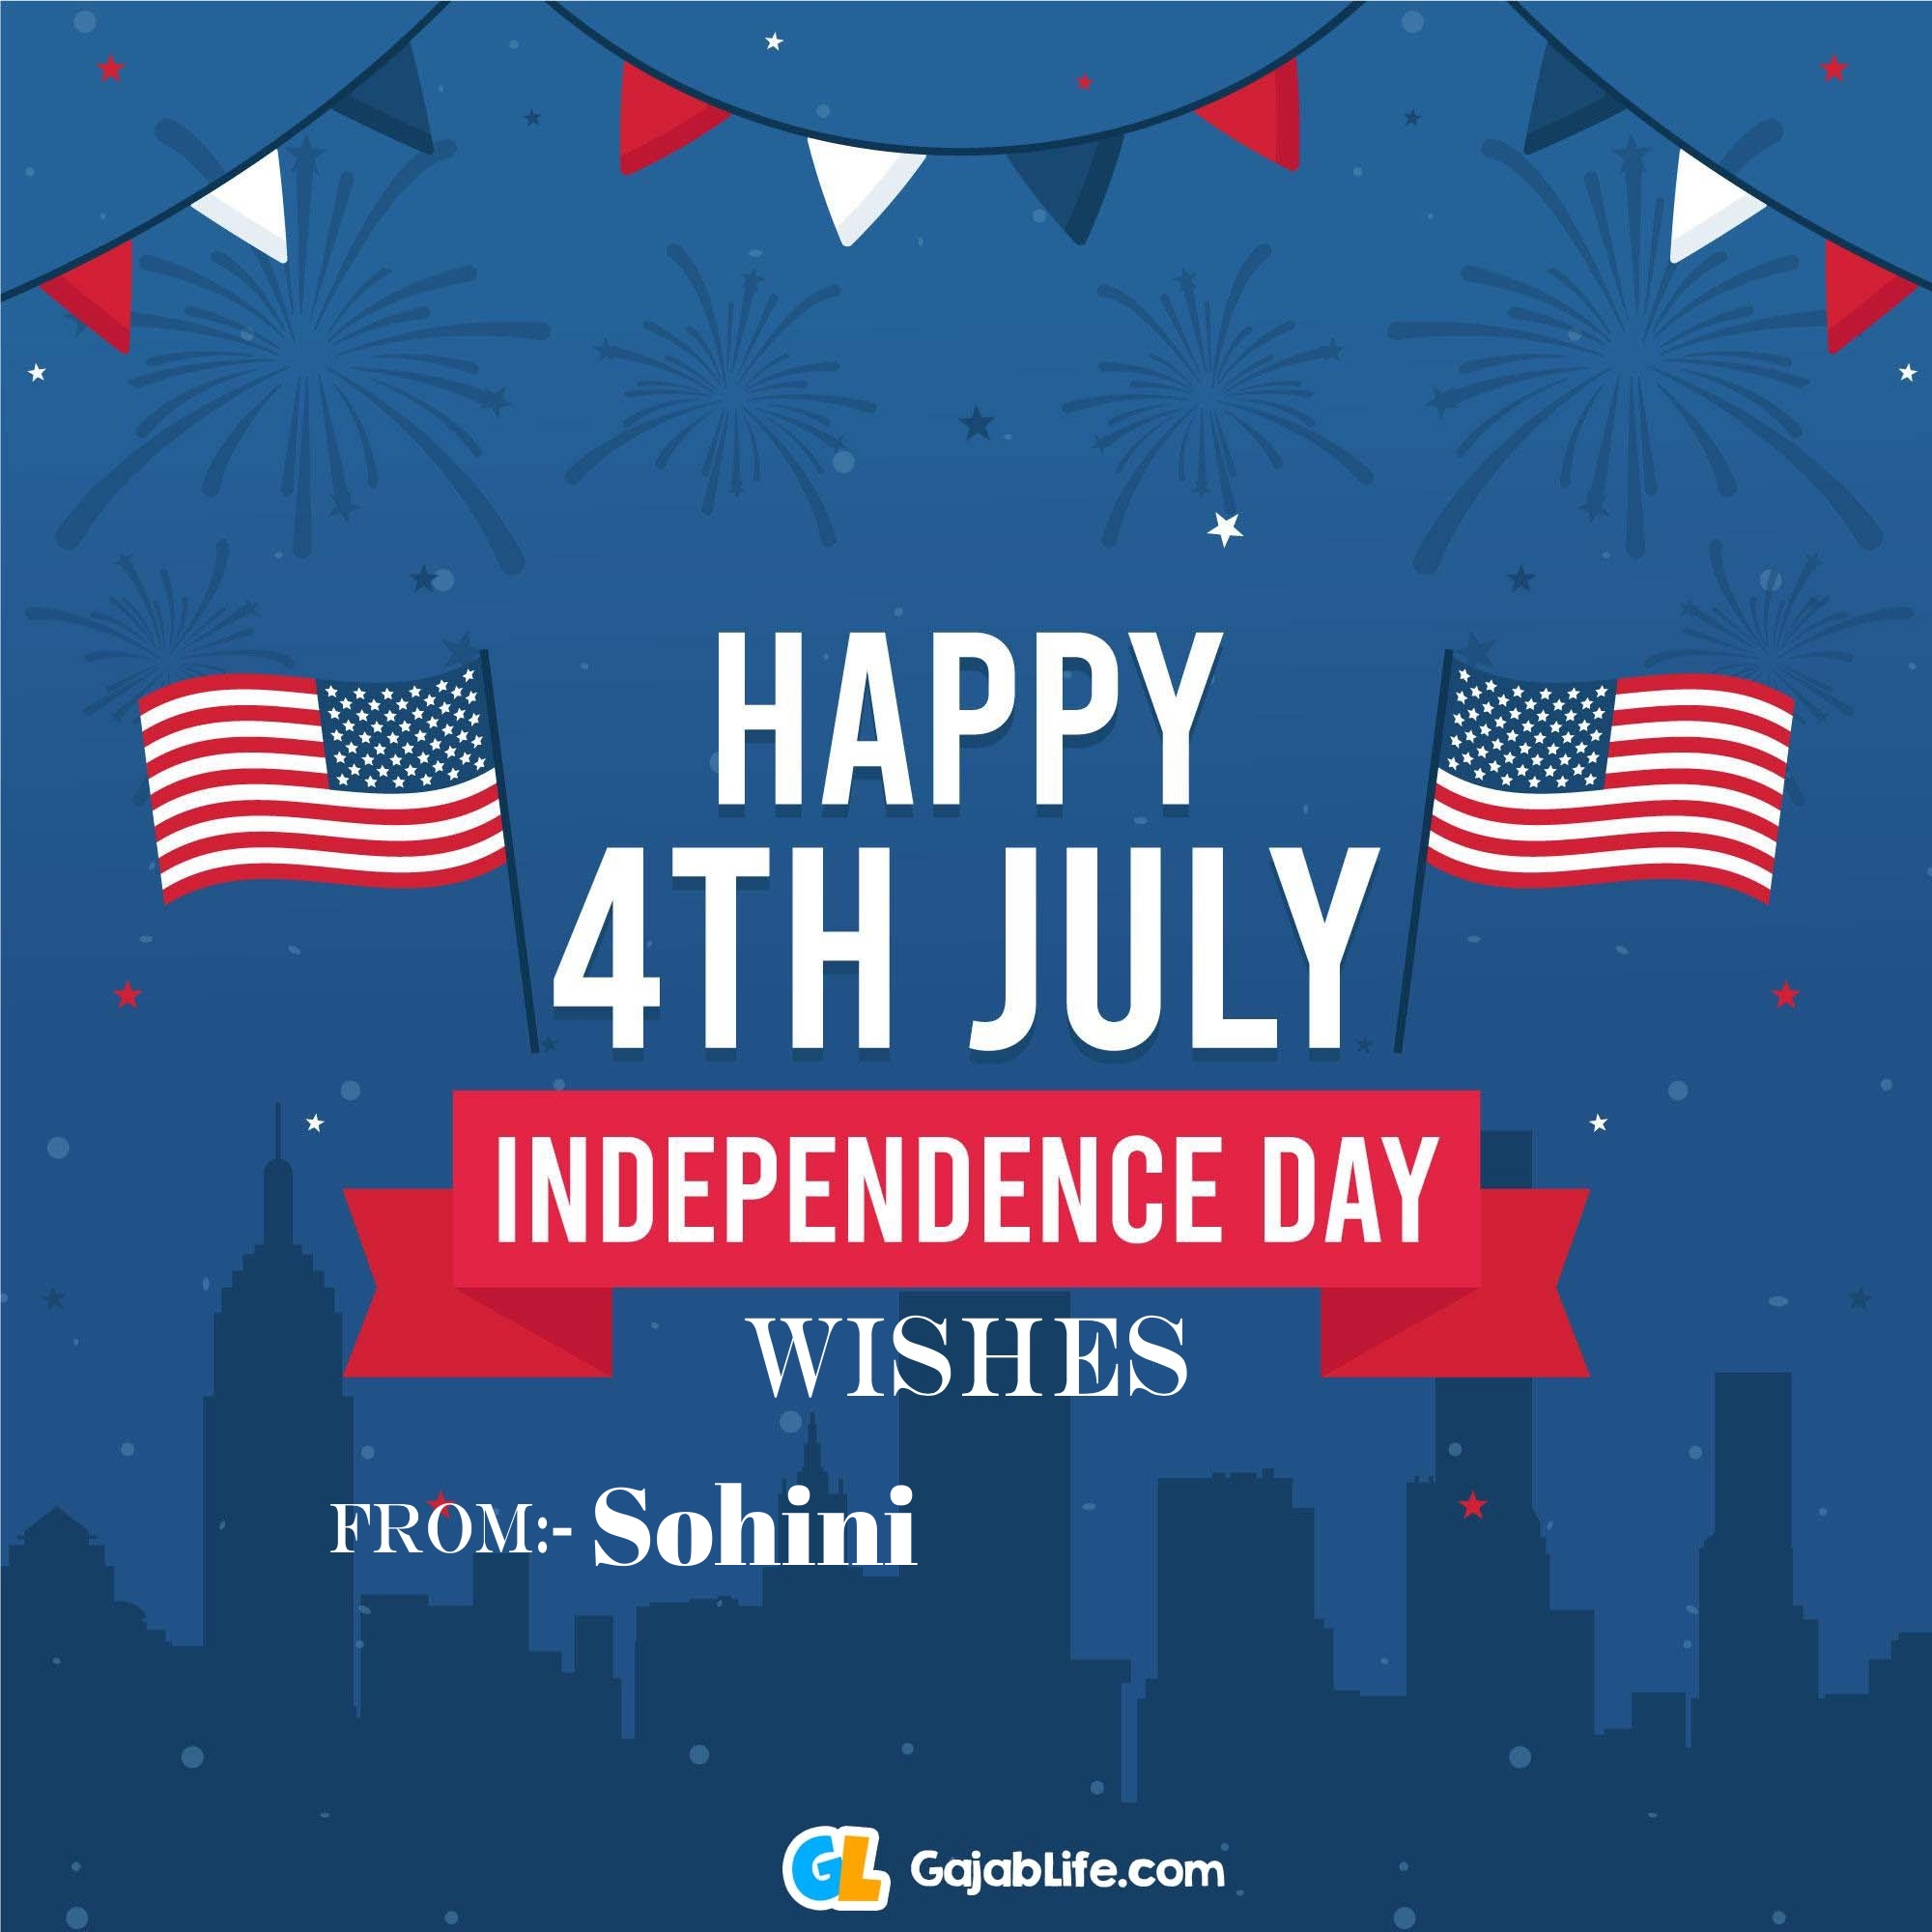 Sohini happy independence day united states of america images